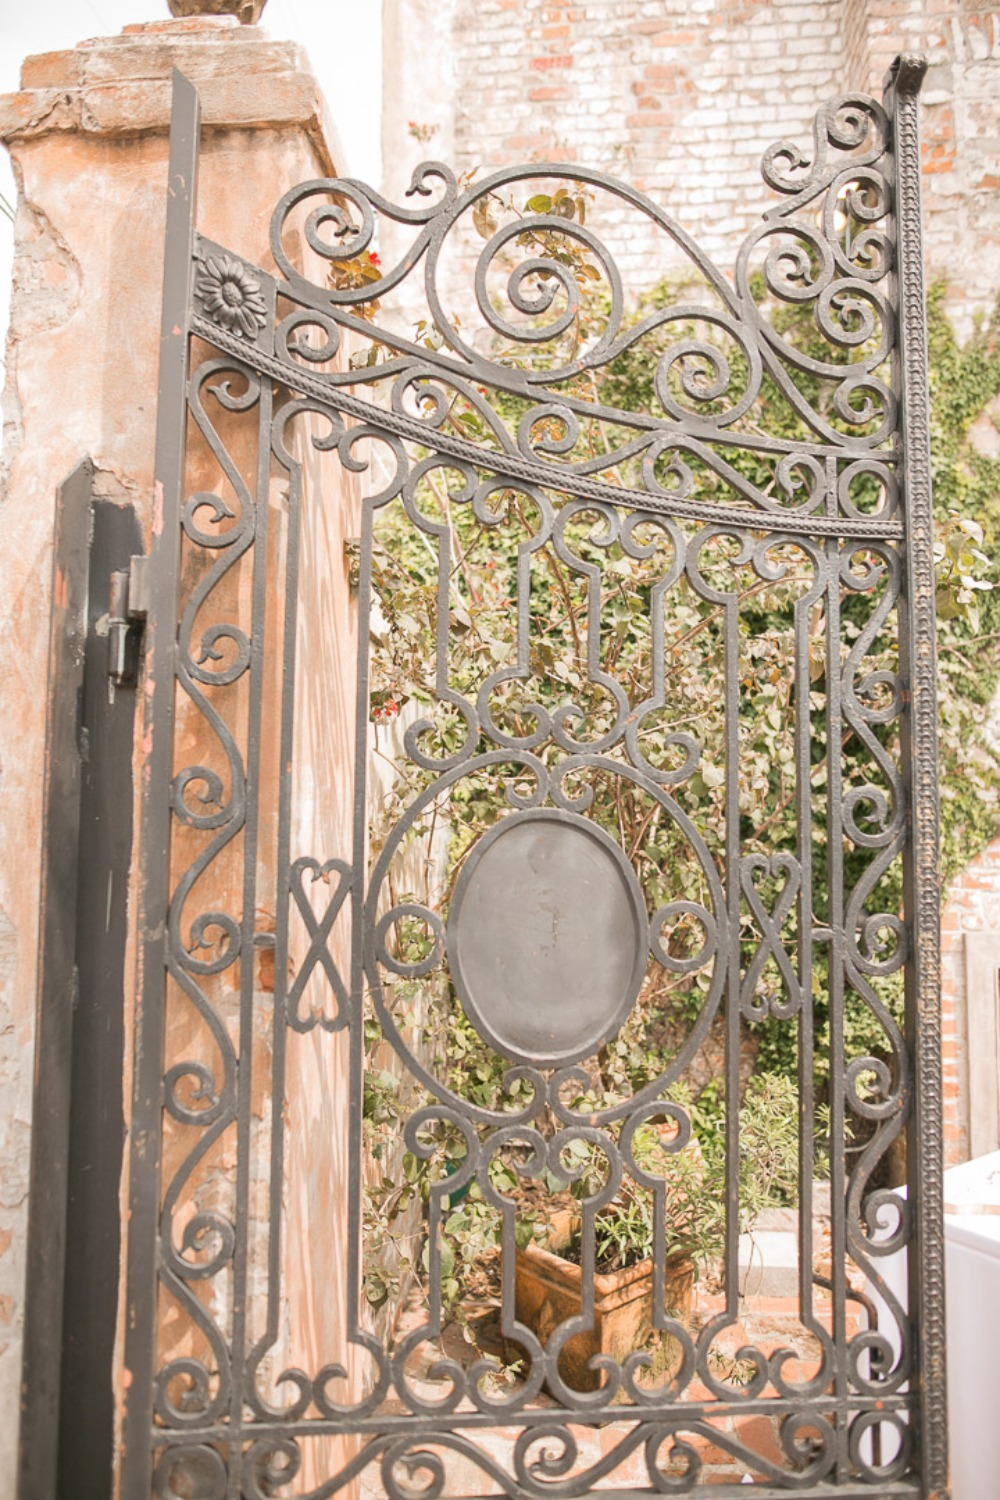 rot iron scrolling fence